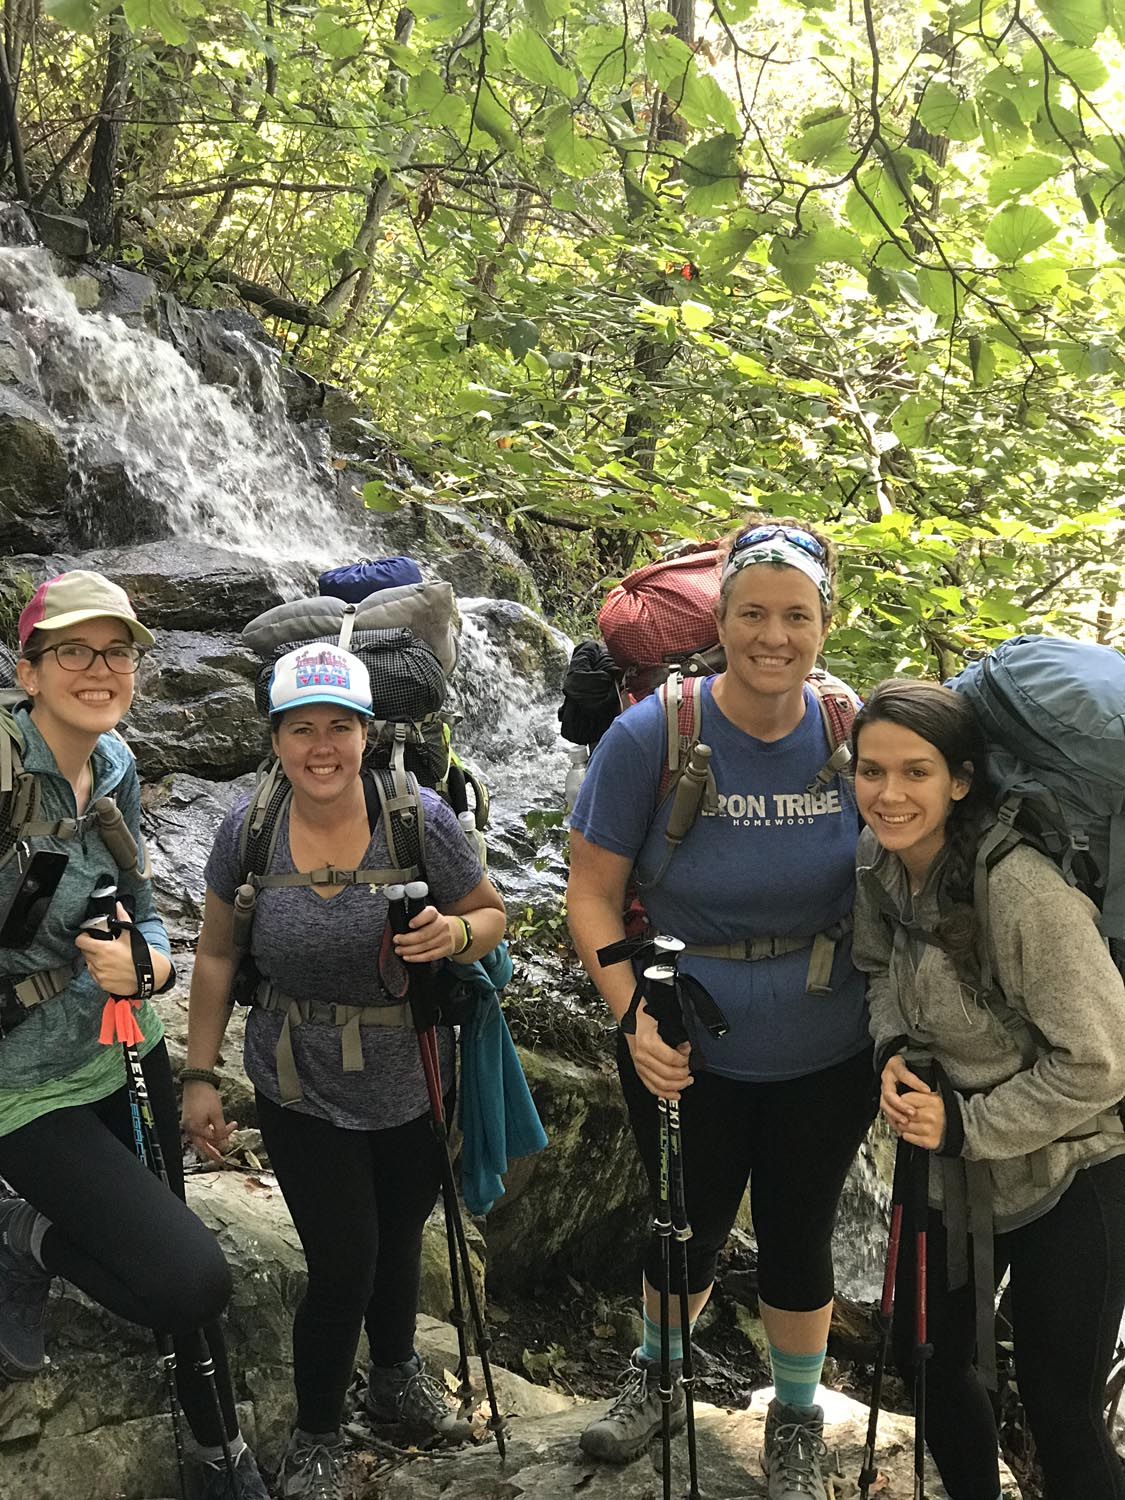 """Our fearless leaders at the first waterfall stop (from l to r): Lydia """"Cosmo"""" Larrivee, Amanda """"Wanda"""" McPhail, Molly """"The Mothership"""" Stone & Abby """"Neville"""" Letson."""